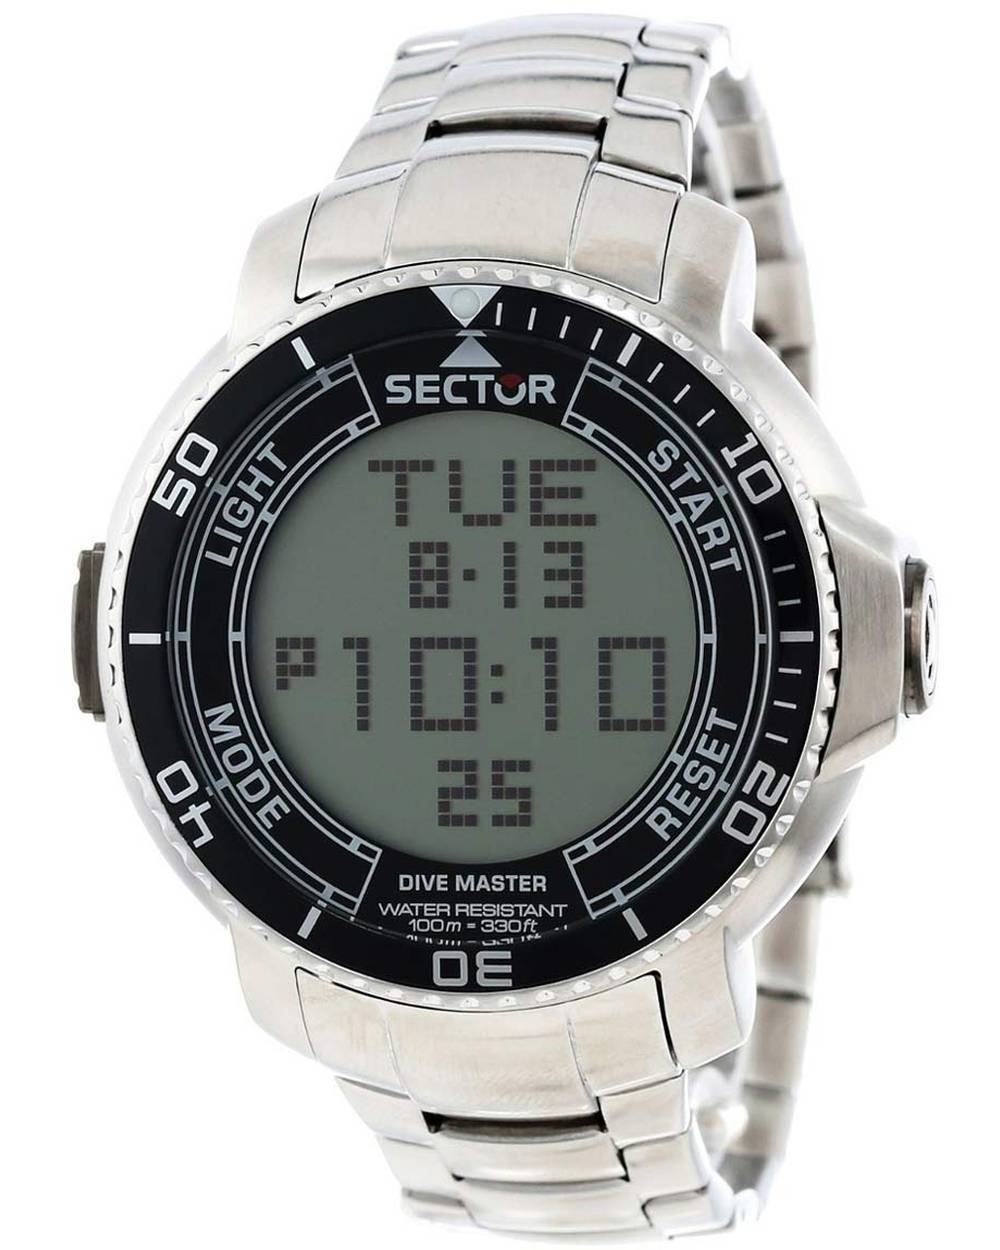 Sector dive master touch screen stainless steel - Sector dive master ...